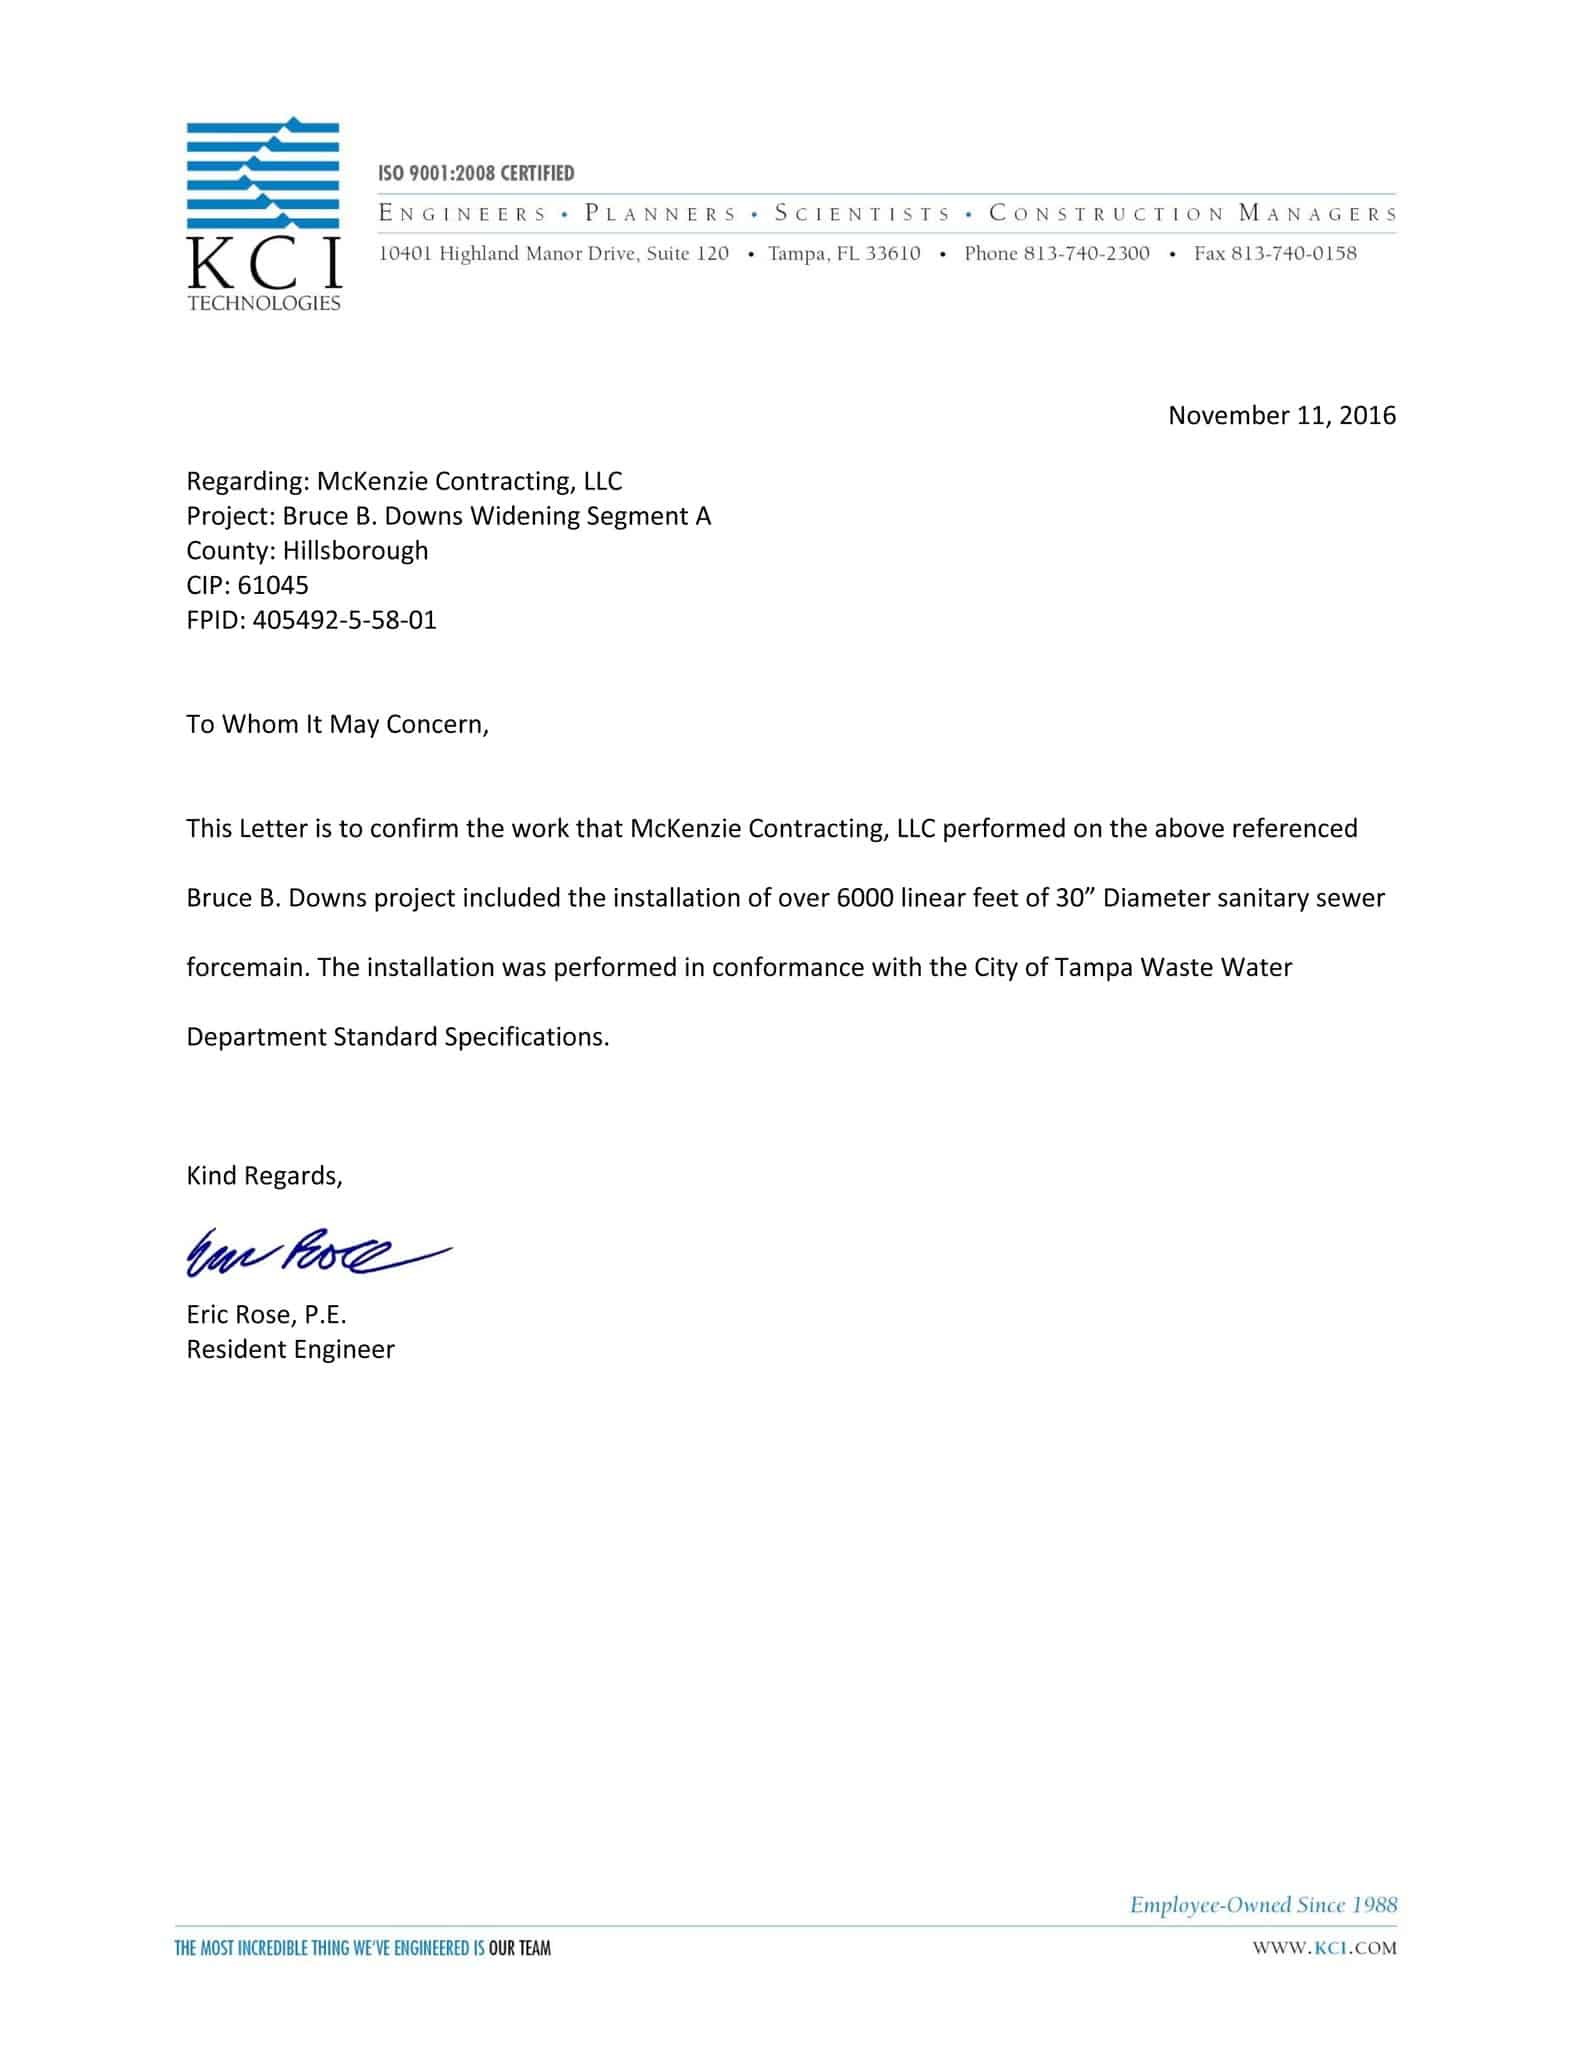 KCI Technologies Letter of Recommendation for McKenzie Contracting